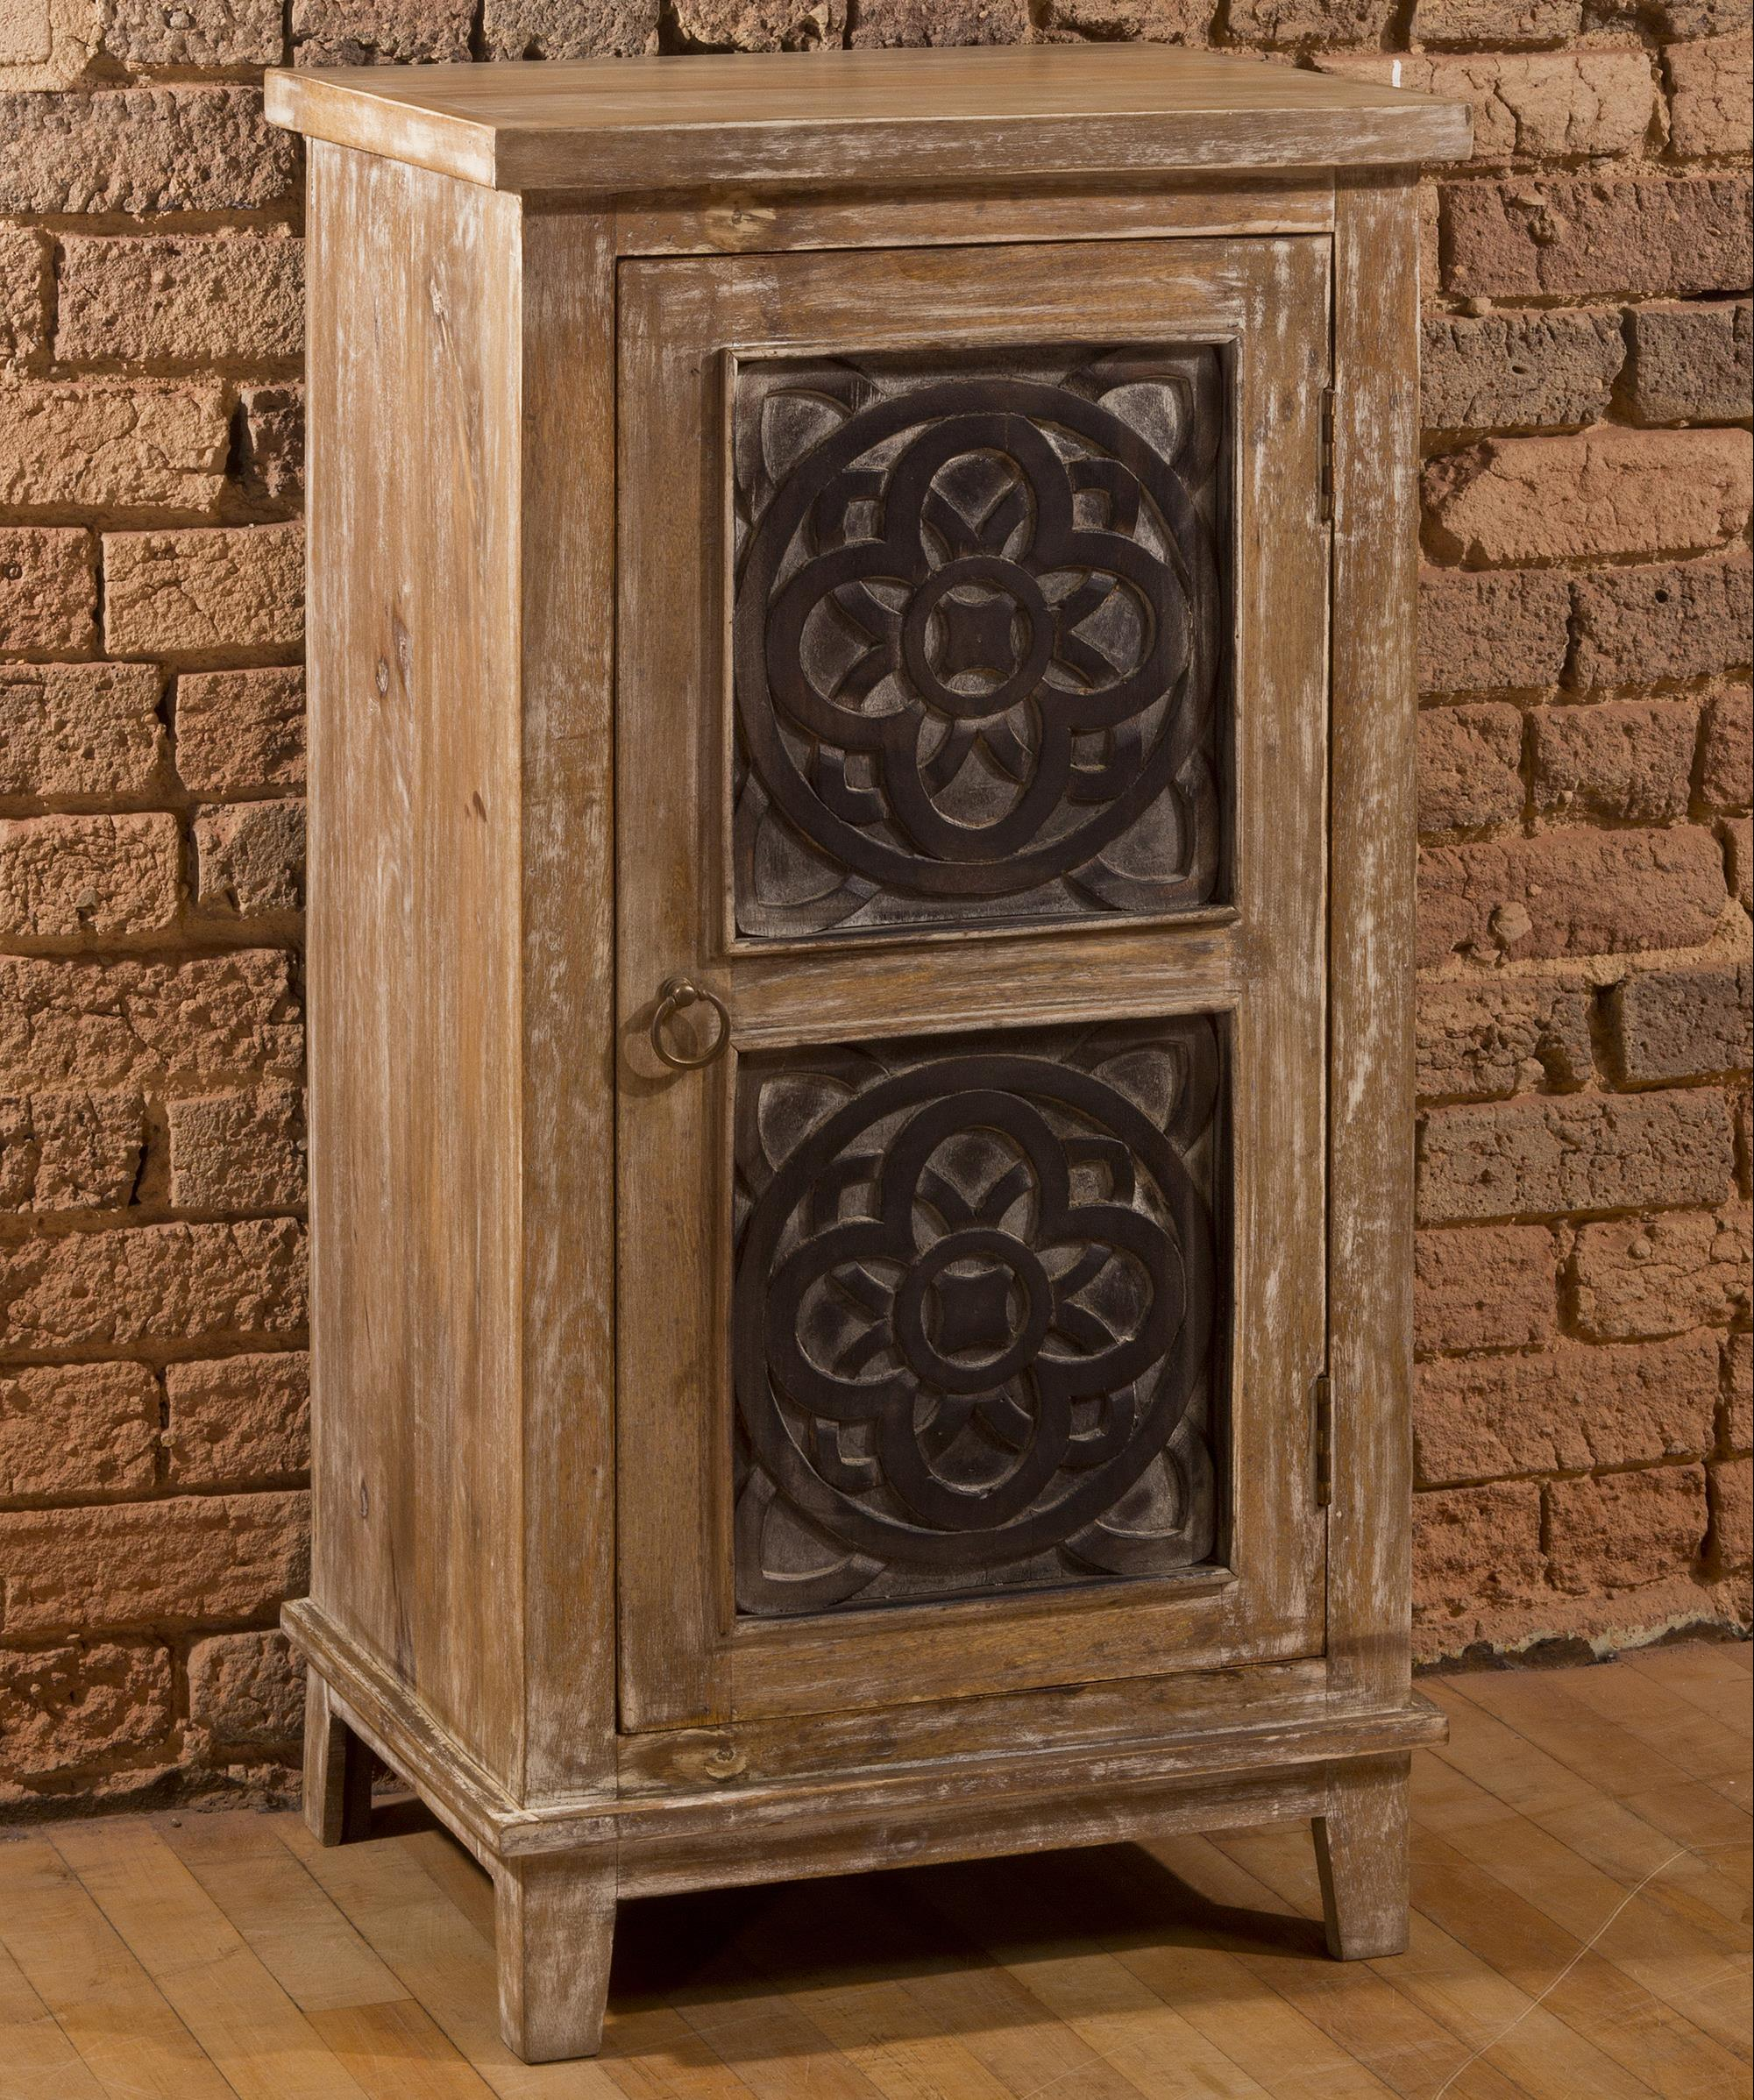 Hillsdale Accents Three Tier Cabinet - Item Number: 5727-881